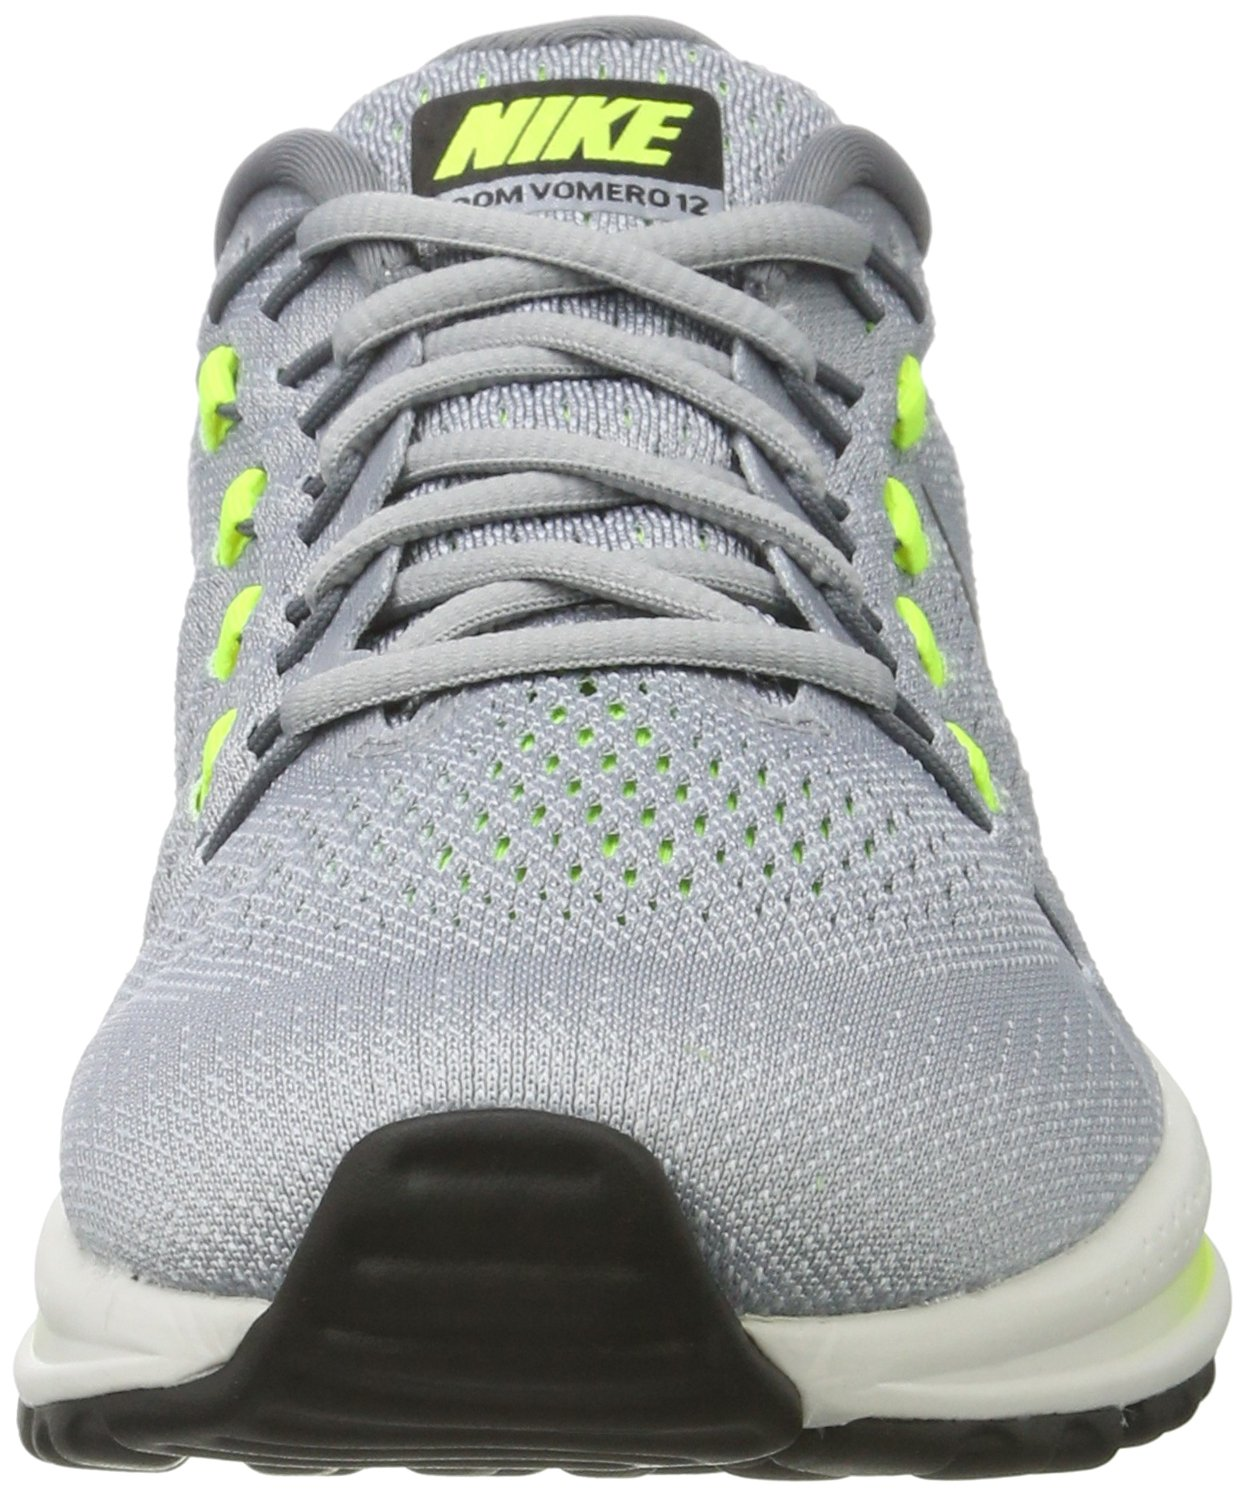 NIKE Men's Air Zoom B01MU9BP0K Vomero 12 Running Shoe B01MU9BP0K Zoom 11.5 D(M) US|Wolf Grey/Black-cool Grey-pure Platinum a1cf36